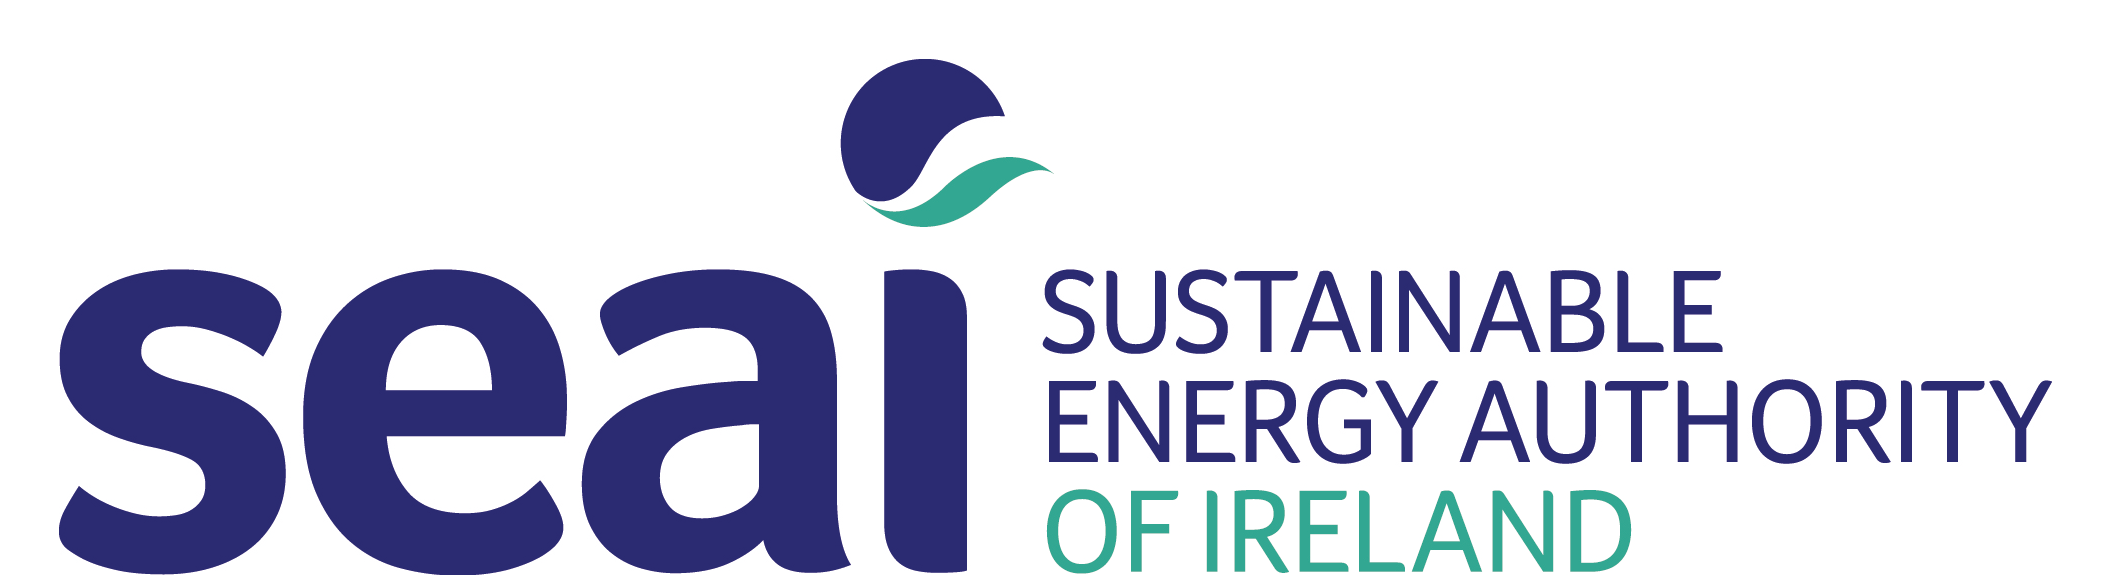 sustainable-energy-authority-of-ireland